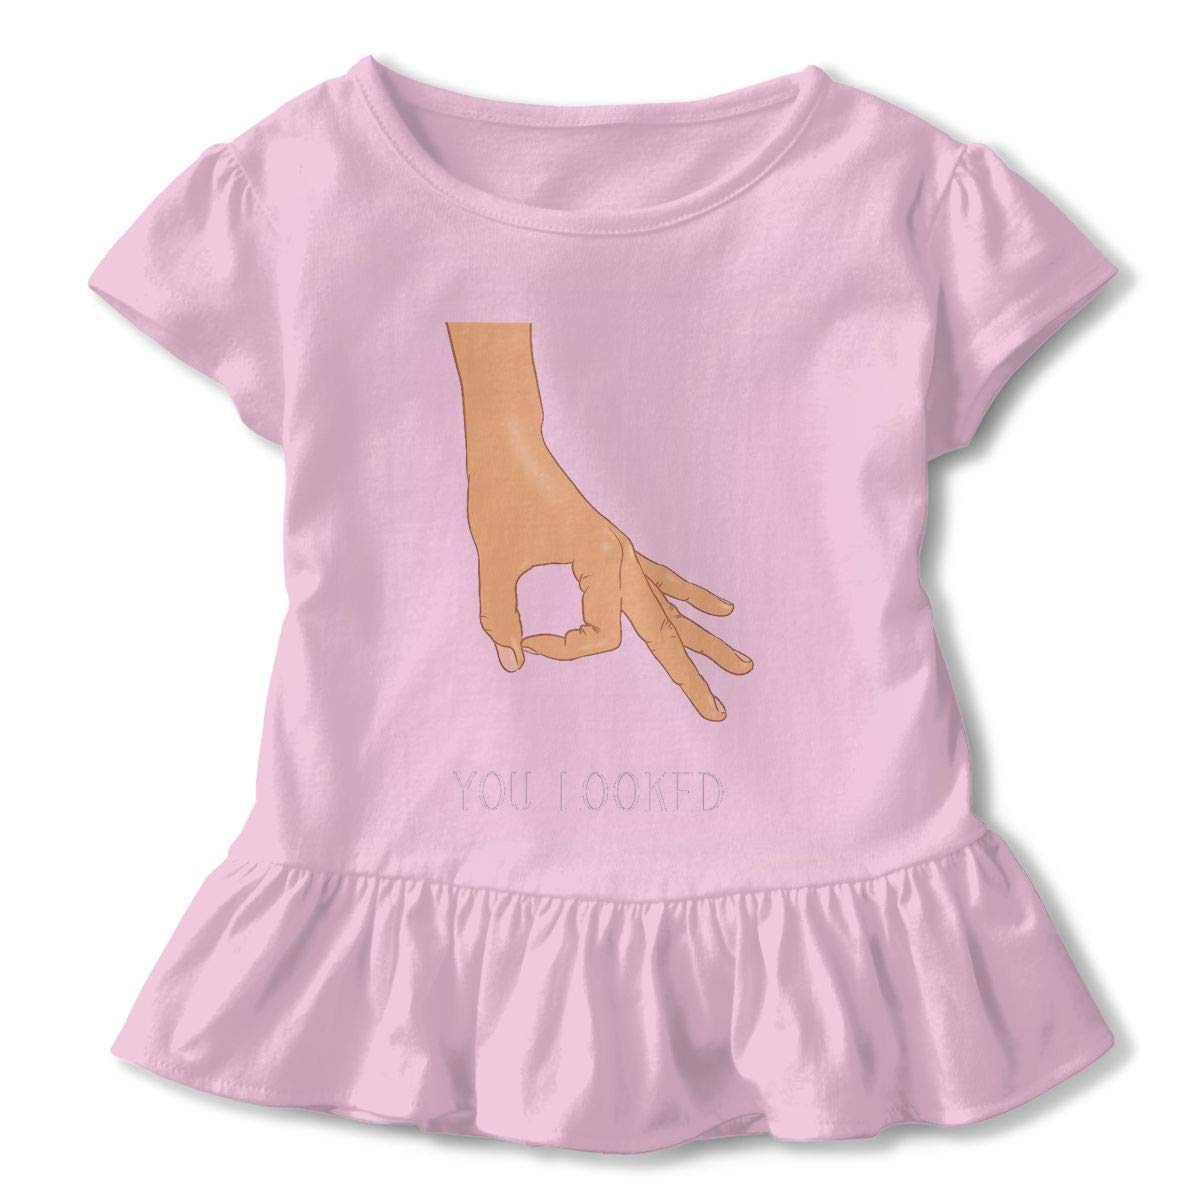 Flat,800x800,075,f Breathable Sweat-Absorbing Cotton Tee T-Shirts Shirts with Round Neck and Ruffles Casual Top for Toddlers Baby Girls Children Pink